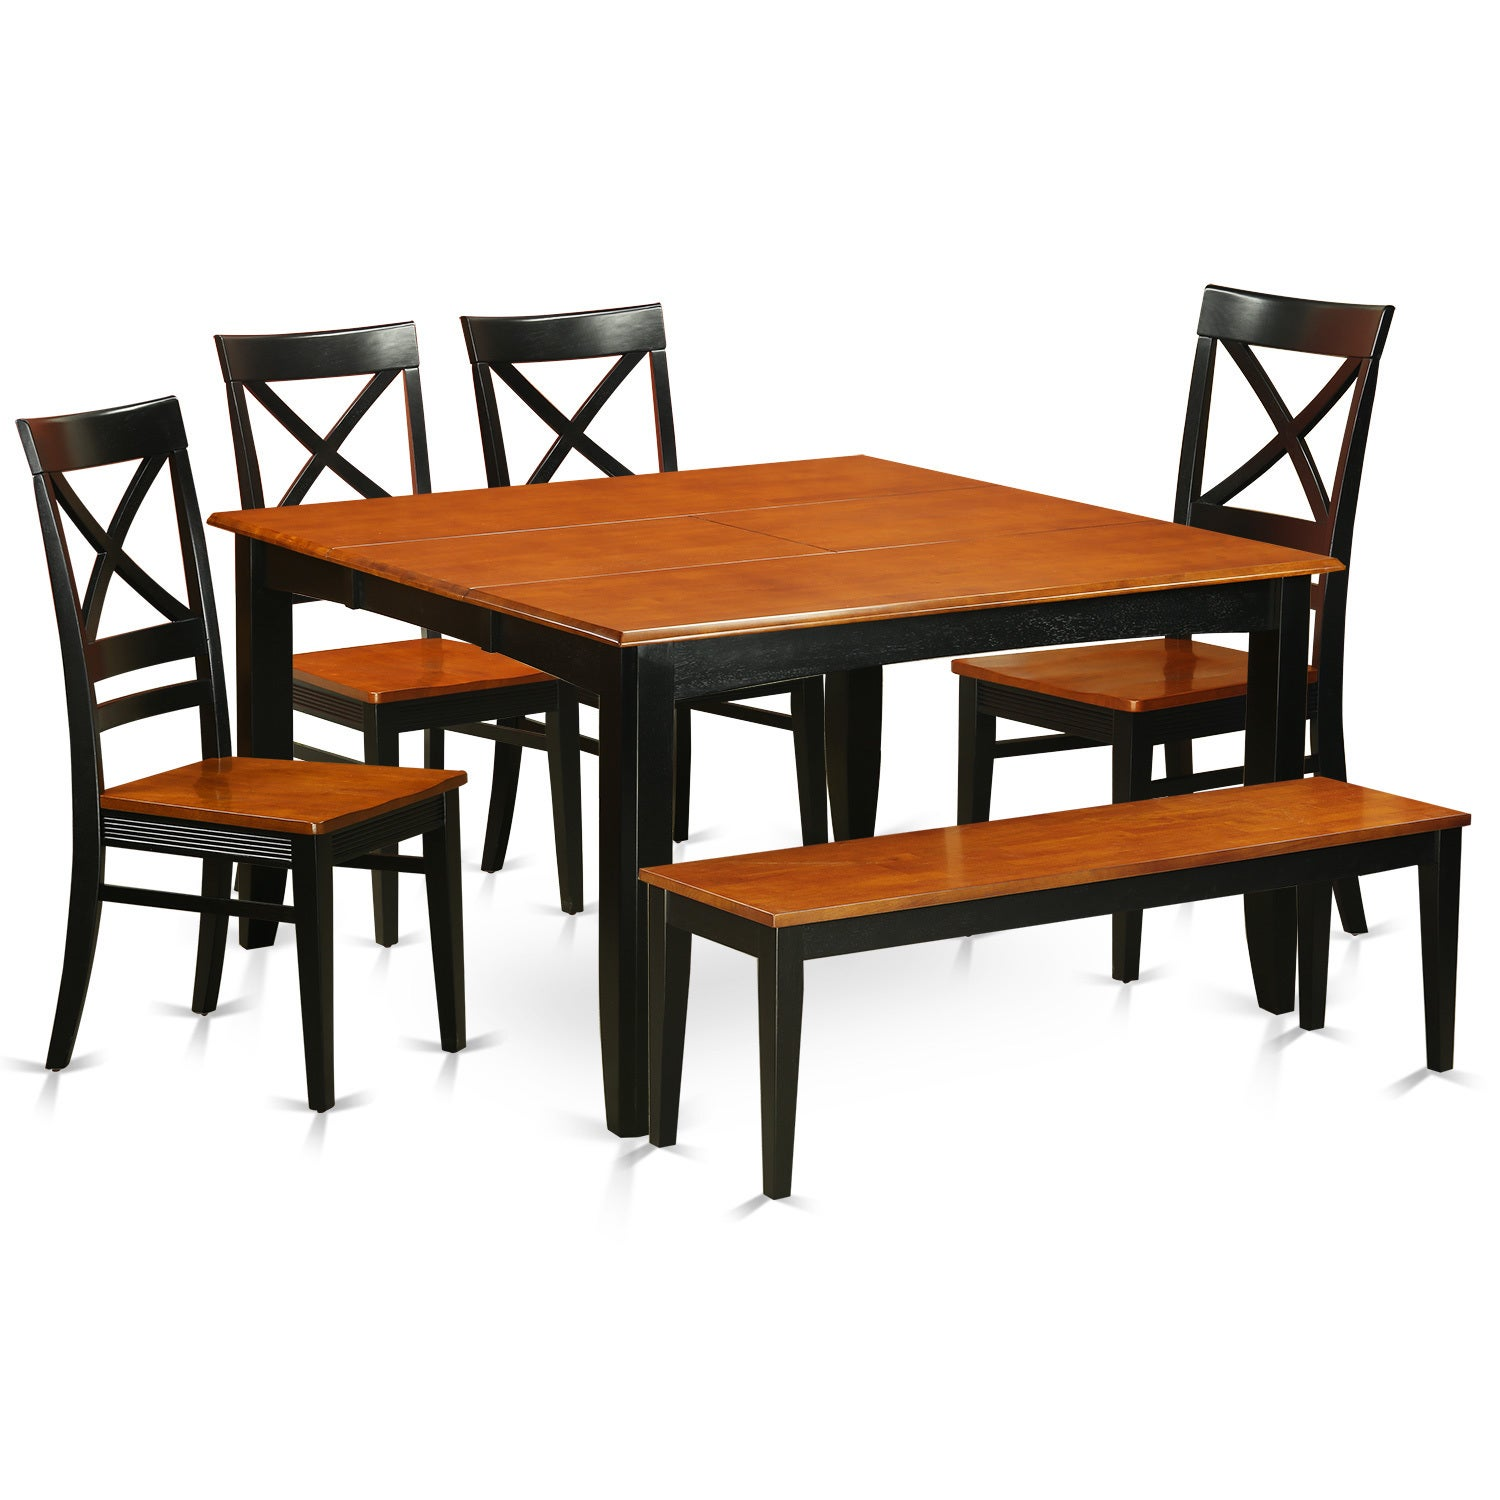 Black-finished Rubberwood 6-piece Dining Room Set with Di...